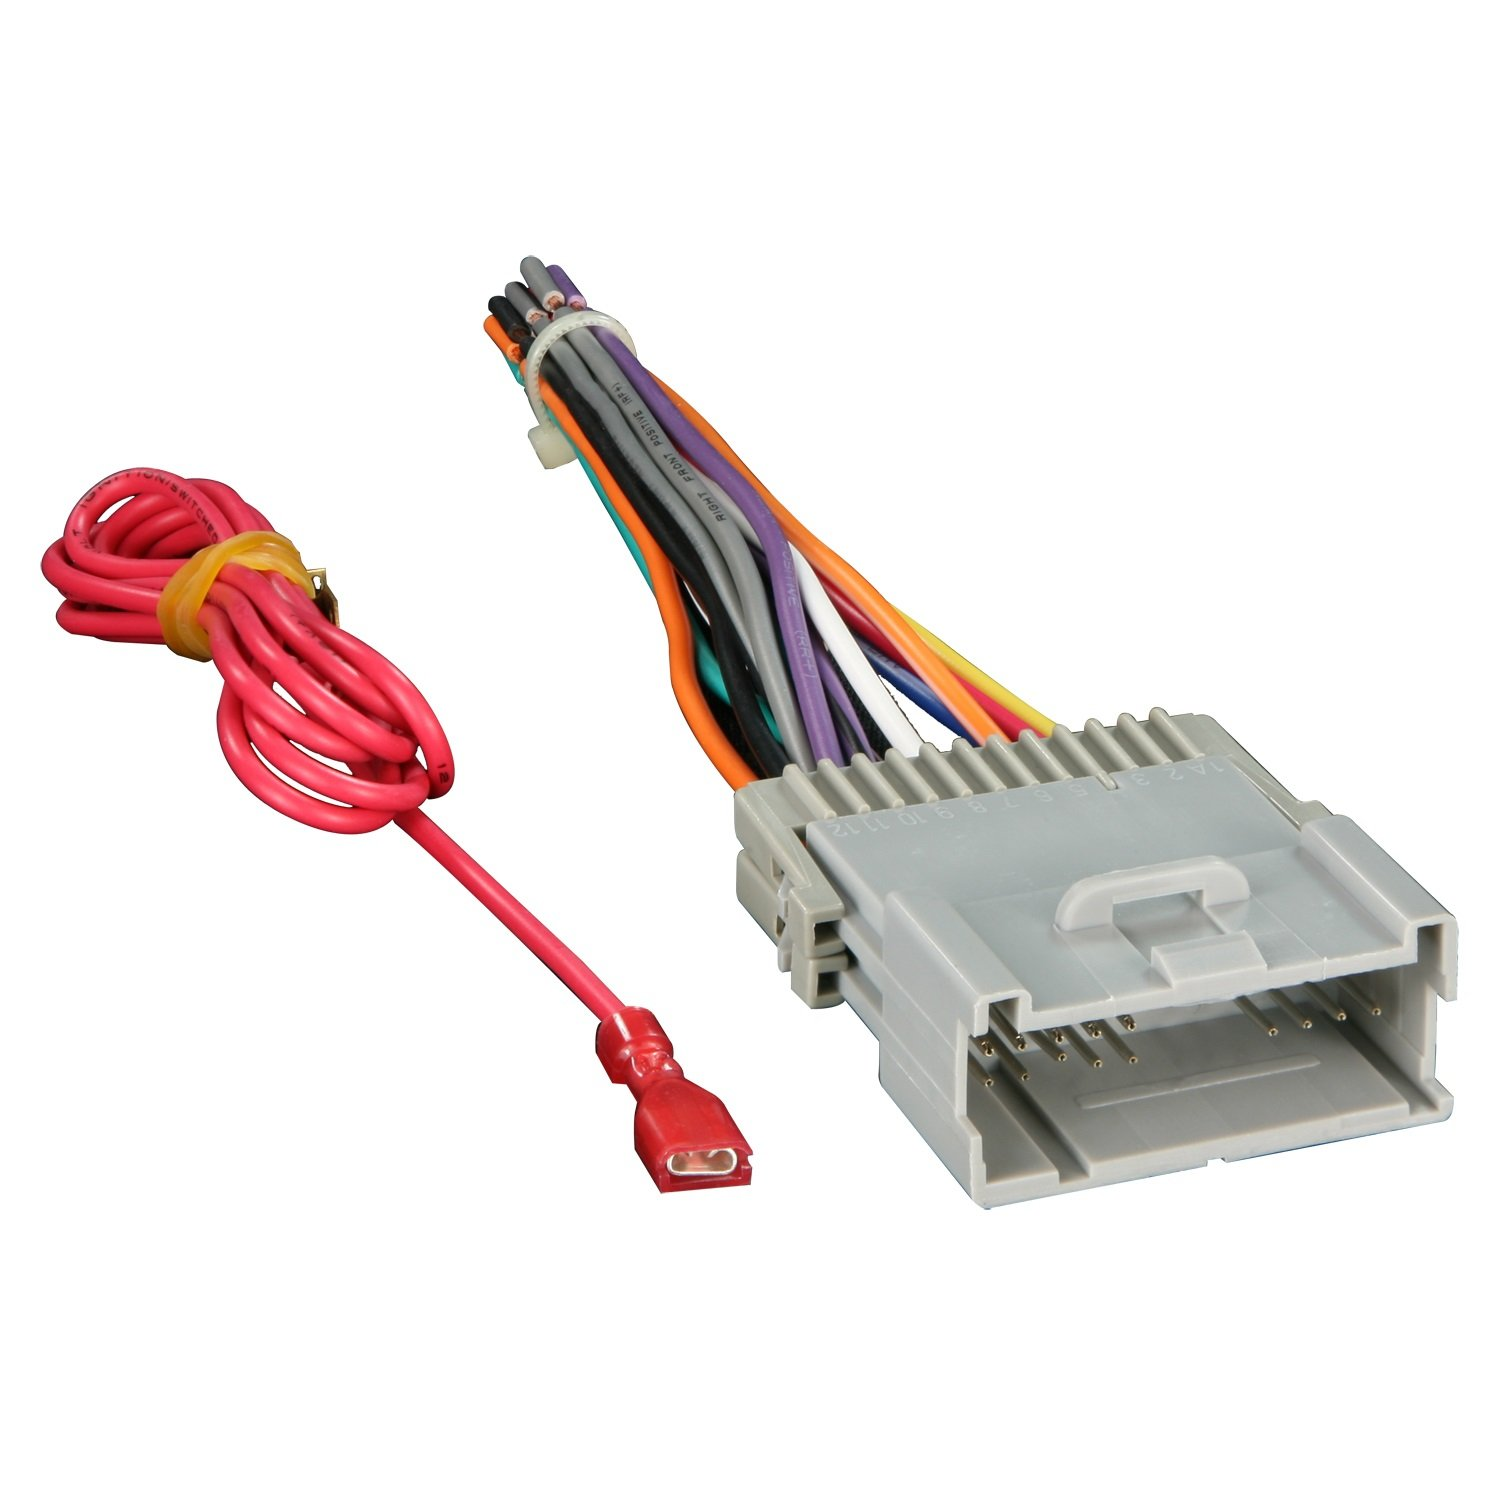 61eewxp9orL._SL1500_ amazon com metra 70 2003 radio wiring harness for gm 98 08 how to connect a wire harness for car stereo at couponss.co